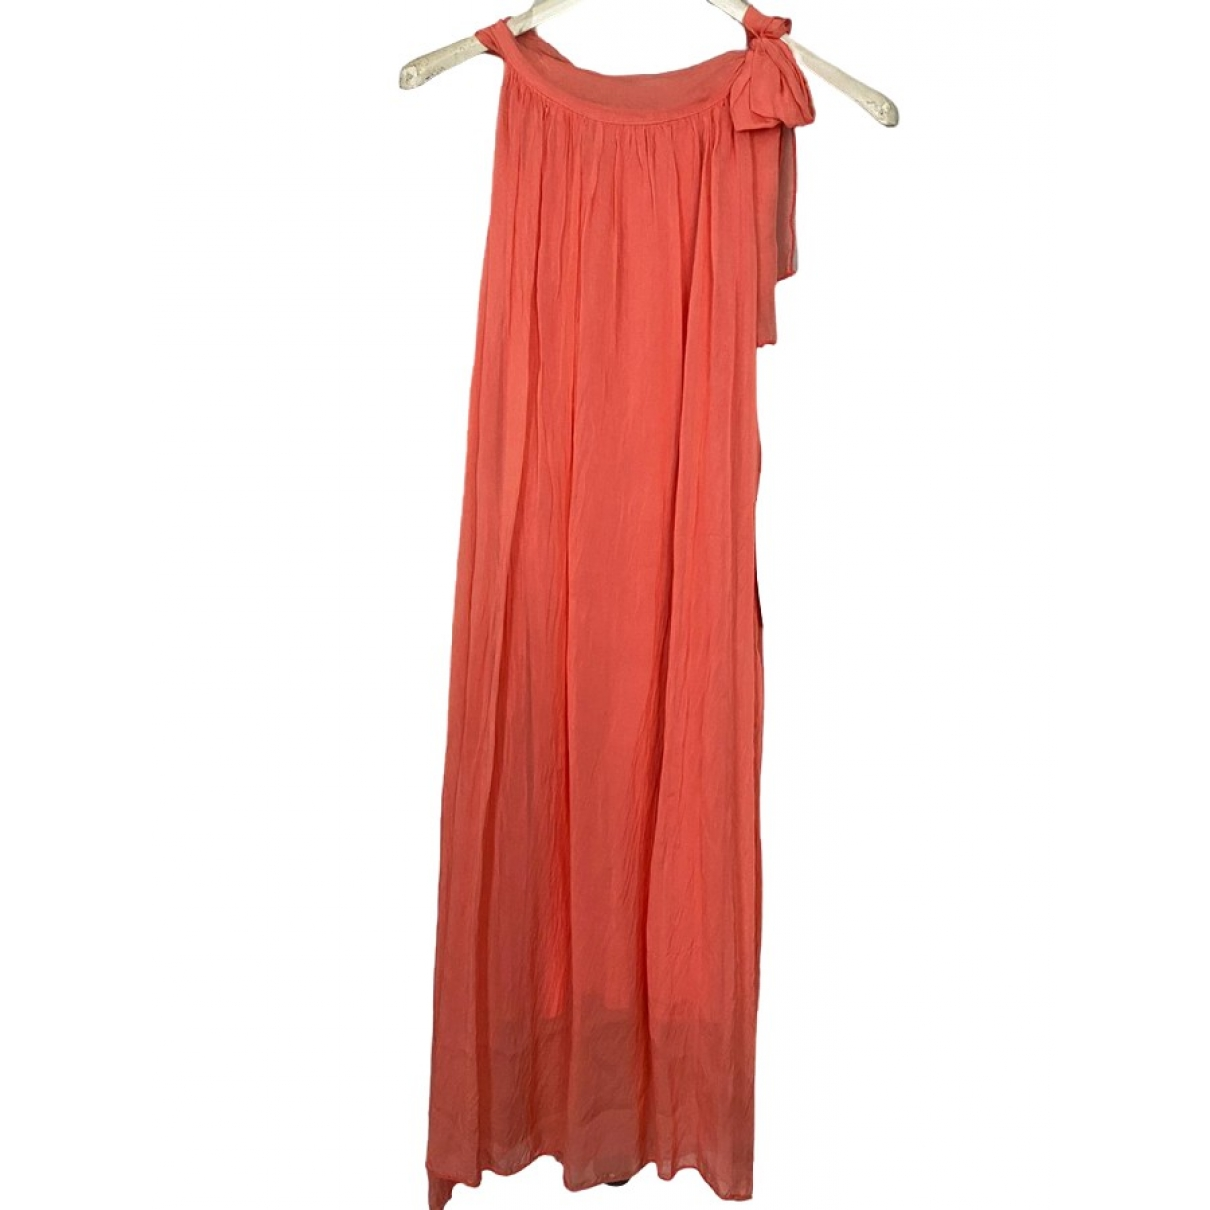 Melissa \N Cotton dress for Women One Size FR